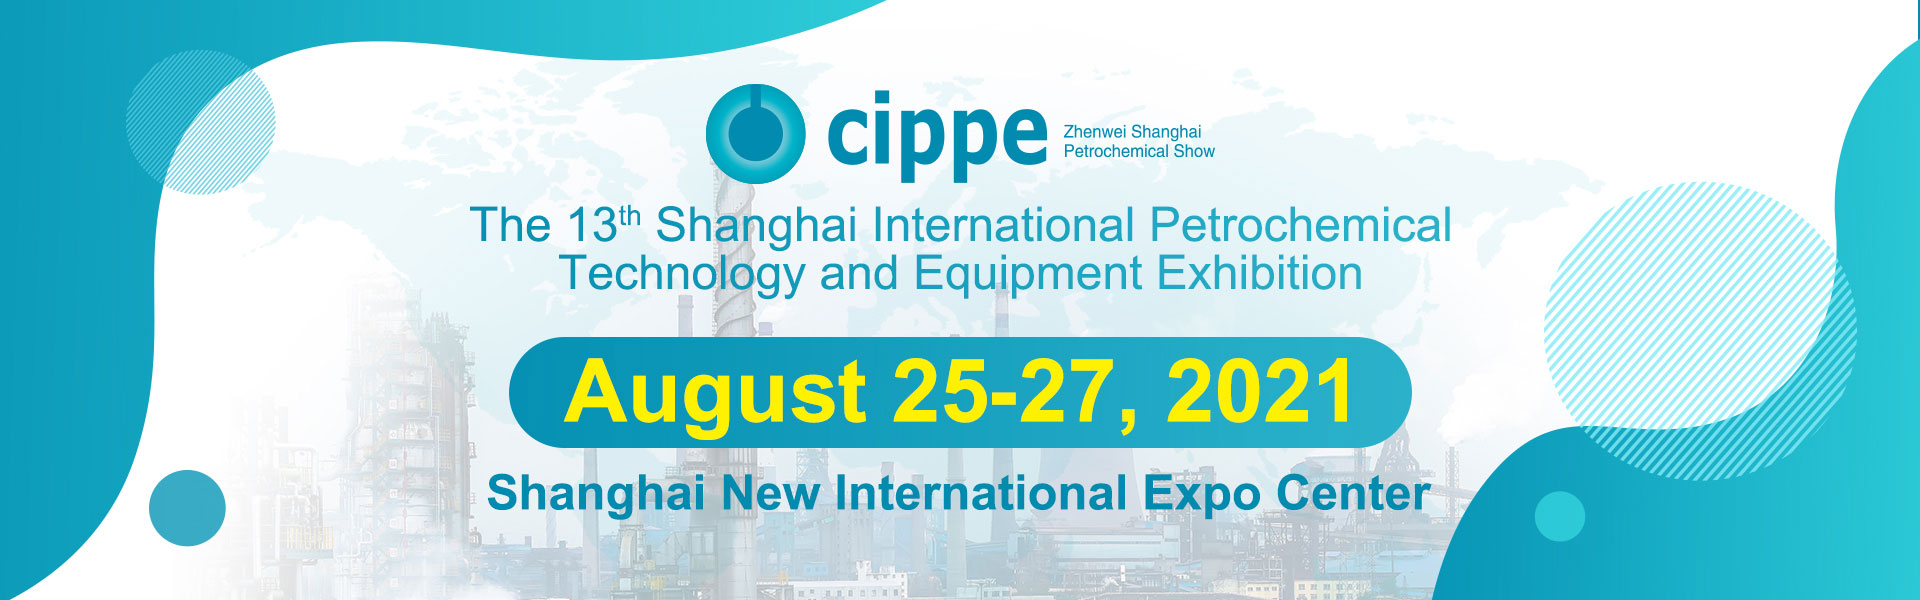 The 13th Shanghai International Petrochemical Technology and Equipment Exhibition